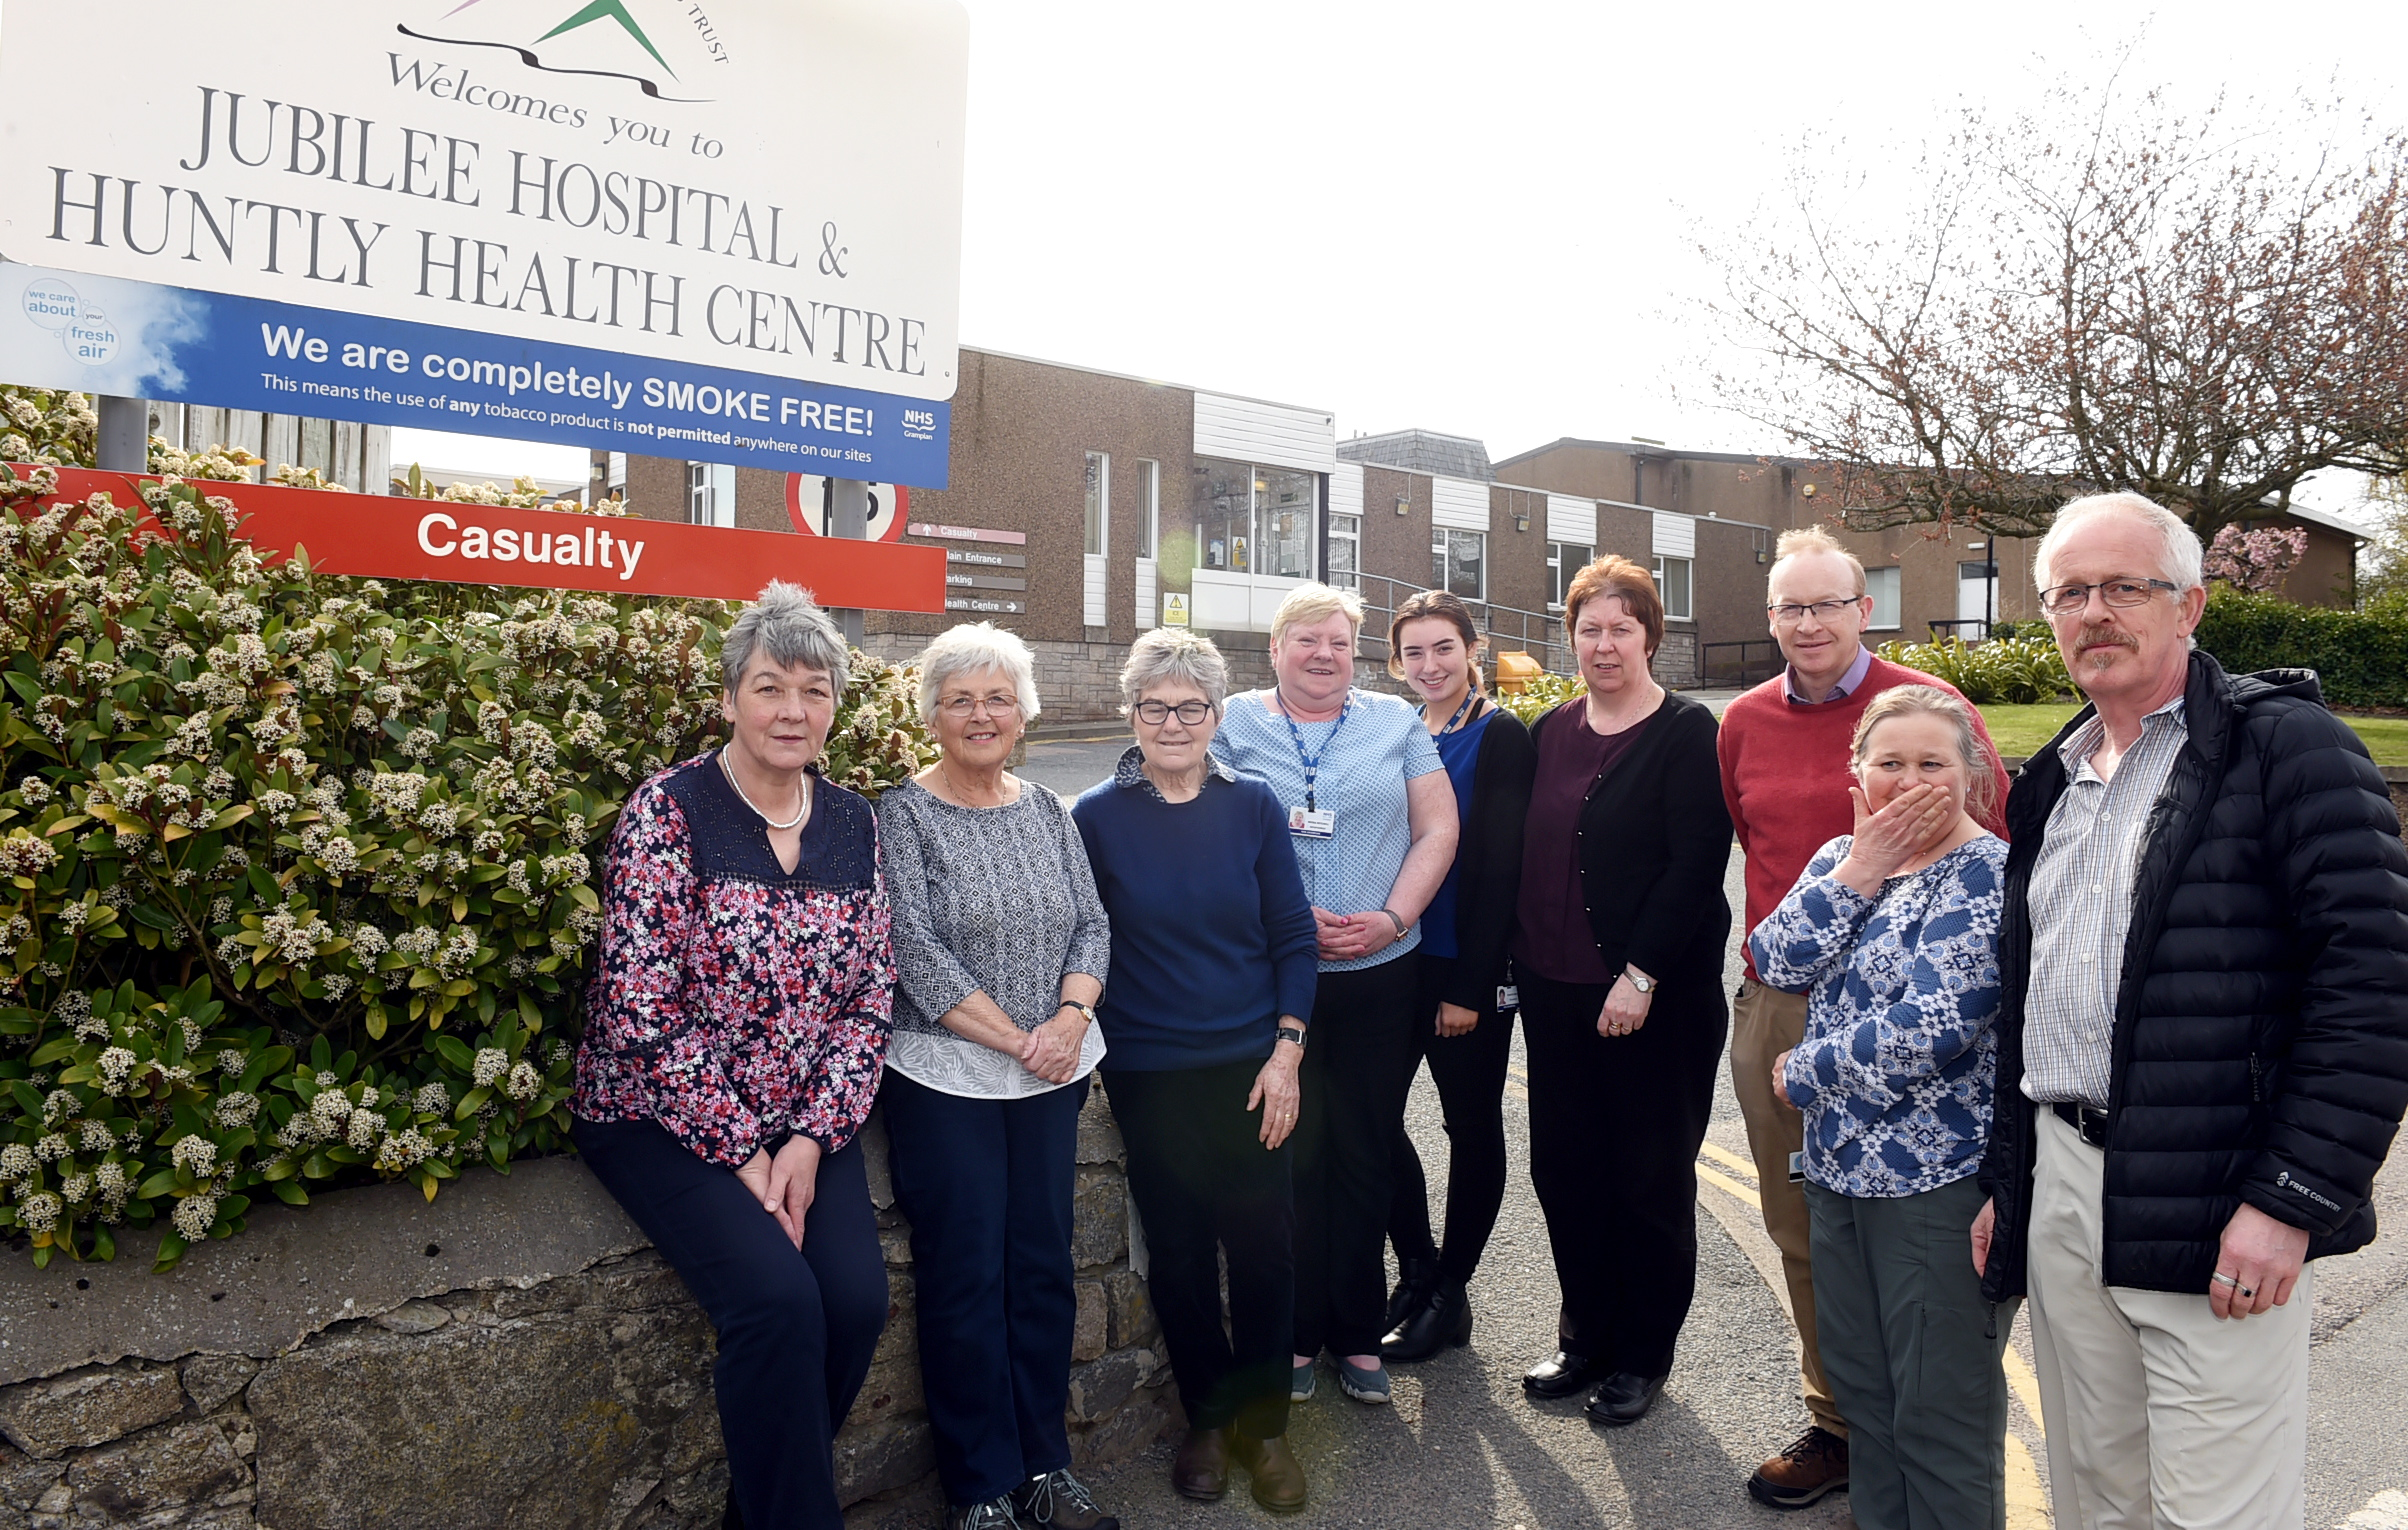 David Easton, right, with the Friends of Jubilee Hospital group